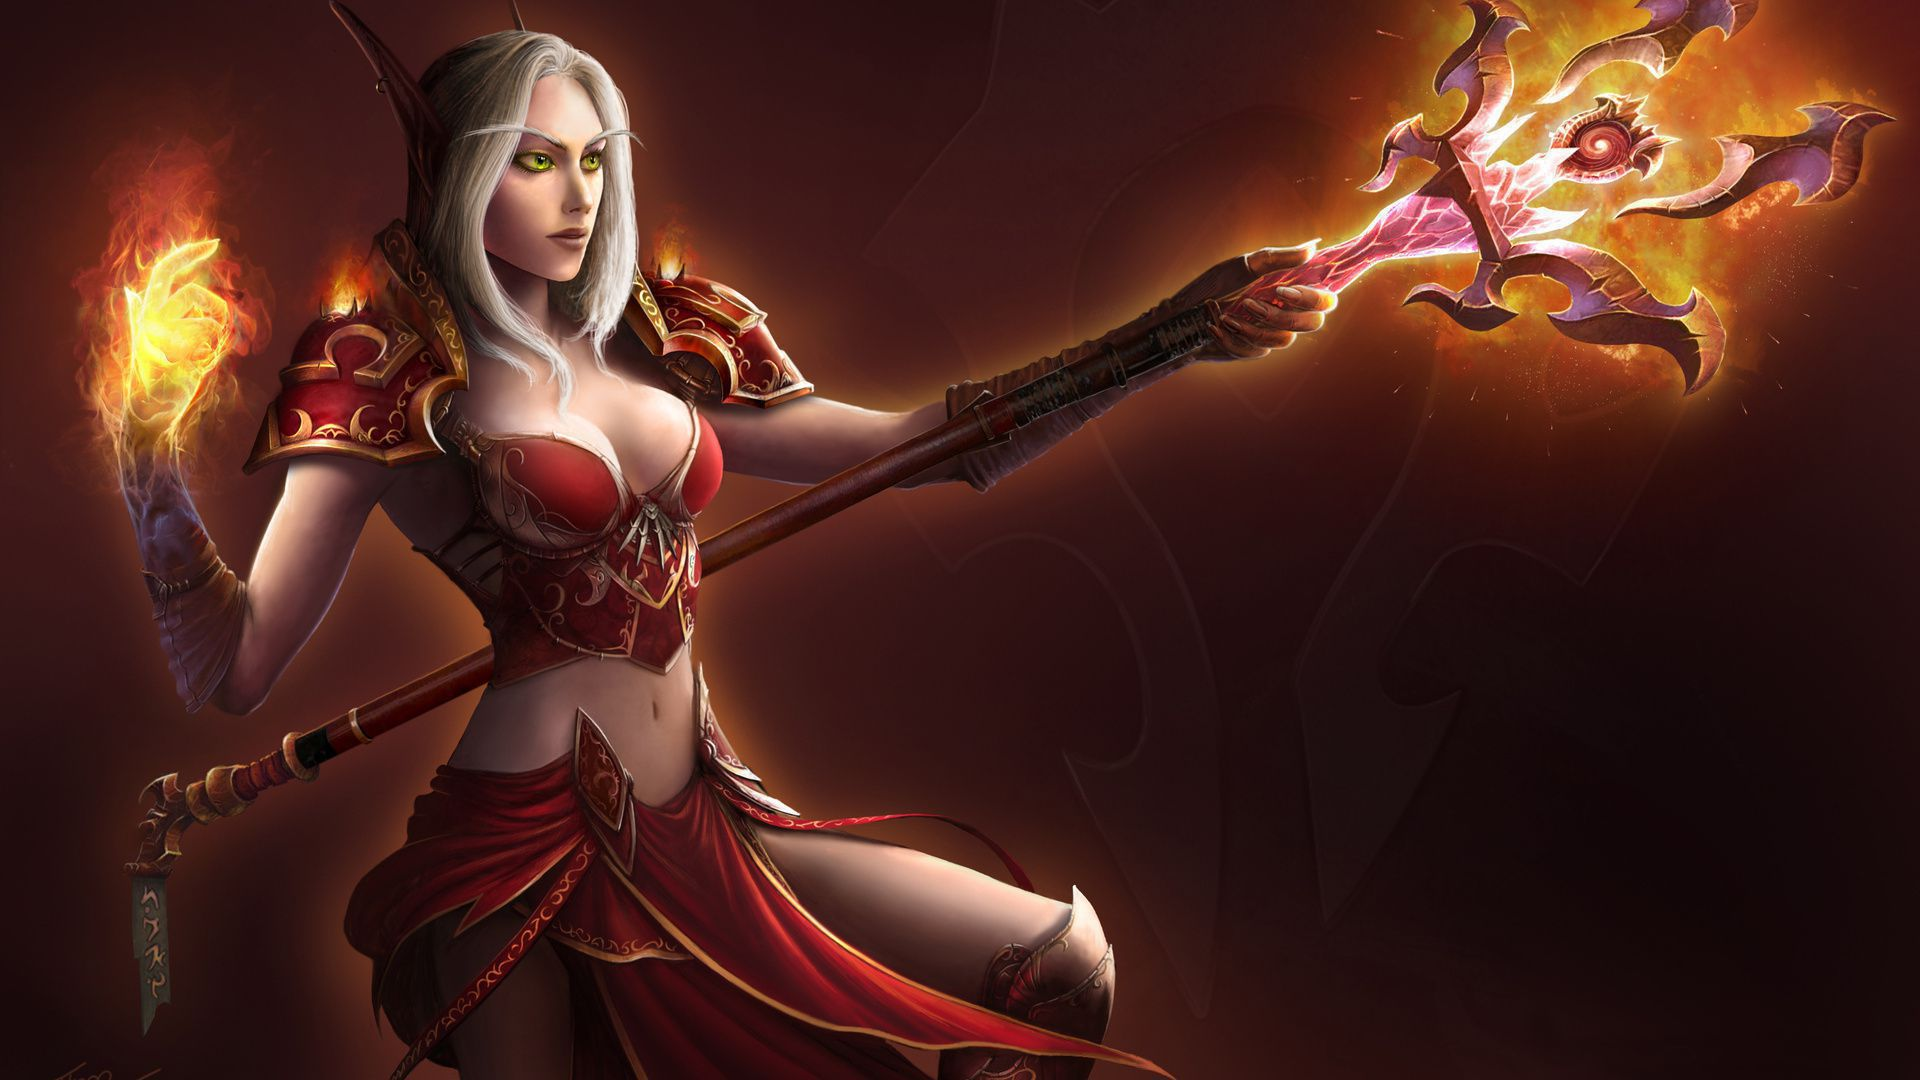 Blood Elf Wallpaper